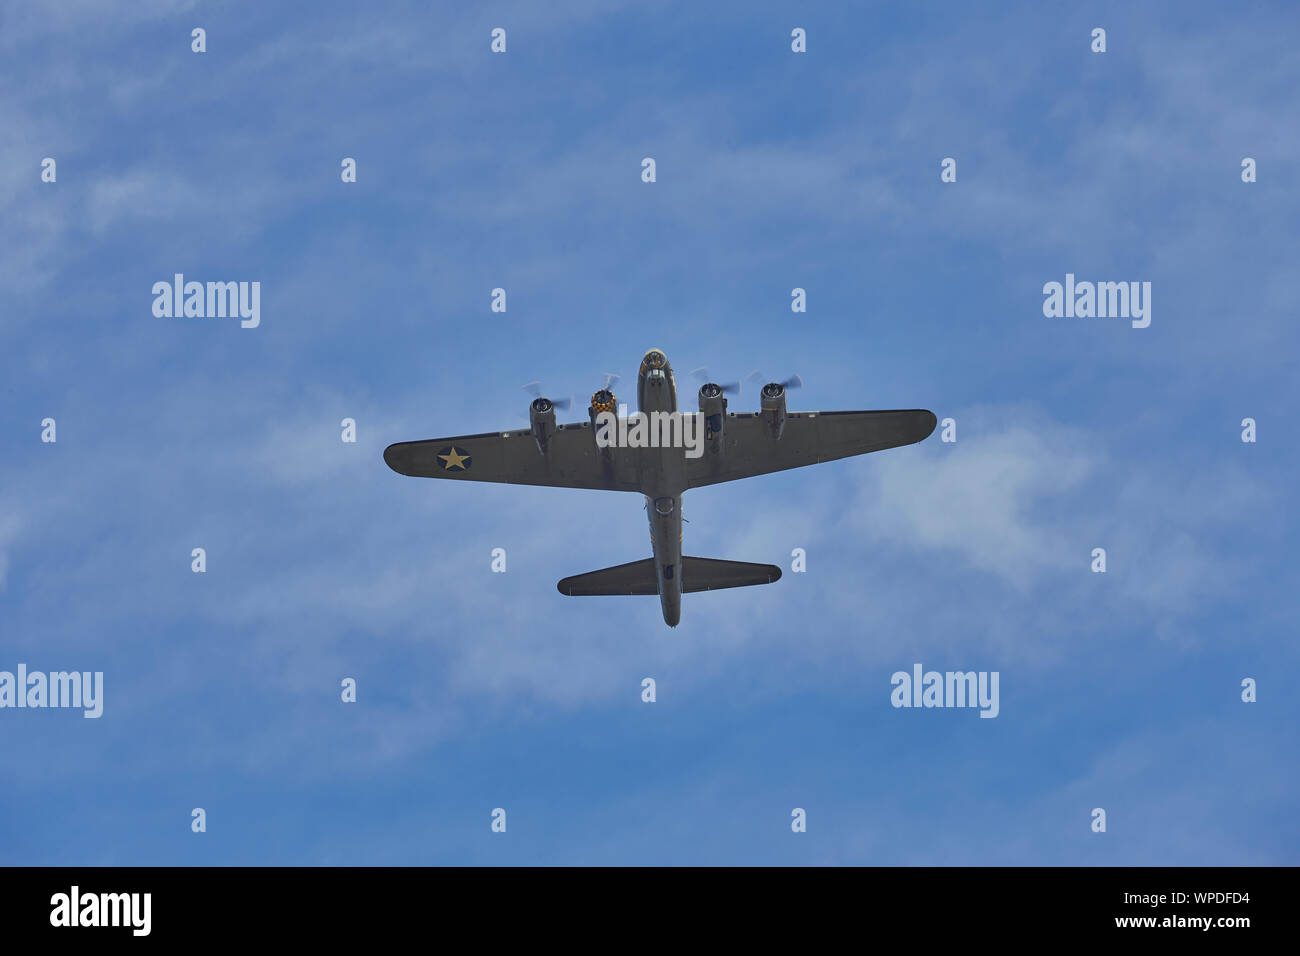 Under side view of the WWII bomber the Boeing B-17 Flying Fortress while flying over the top against a blue sky with some clouds Stock Photo